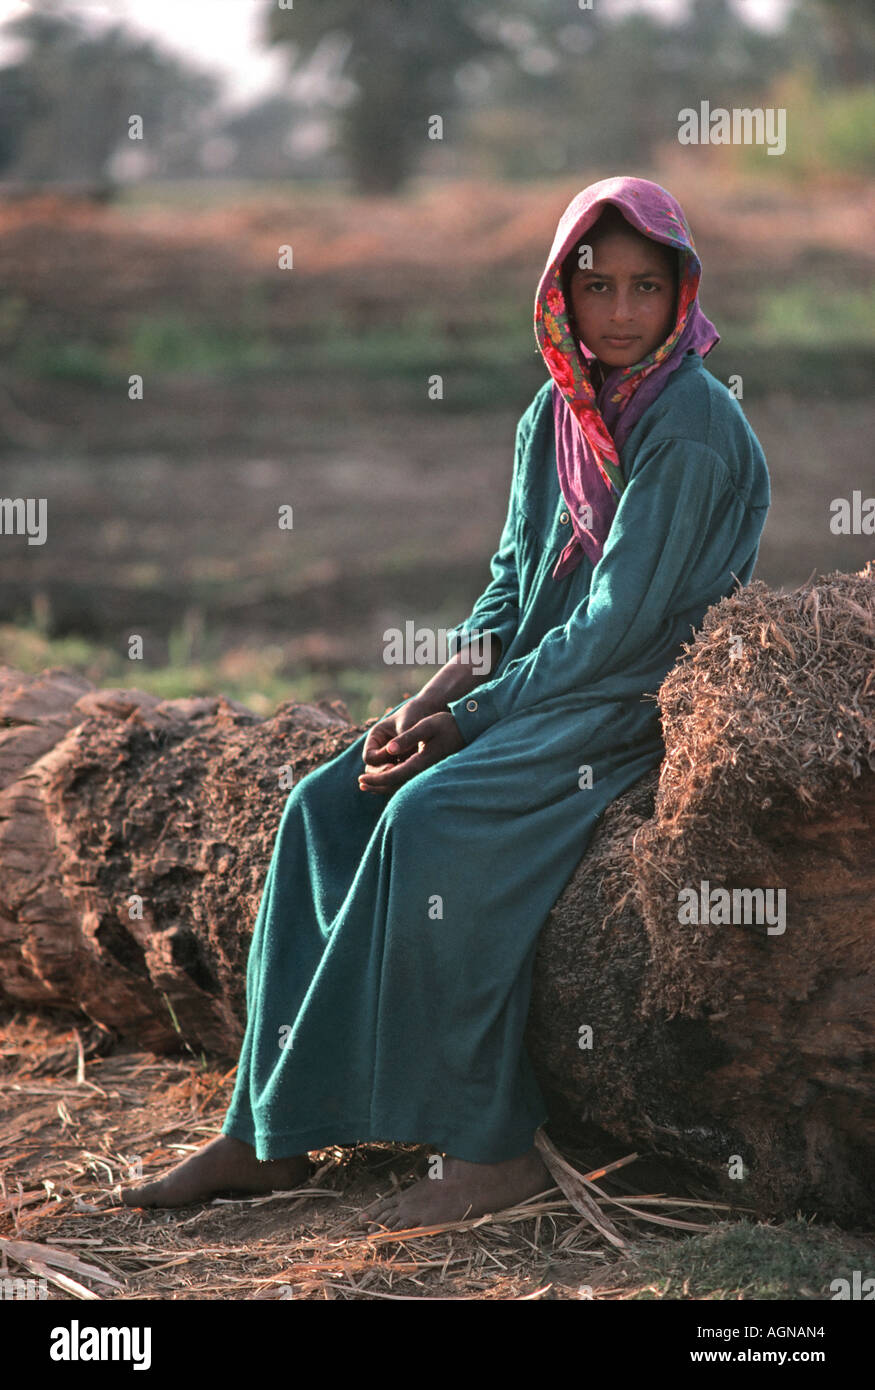 Egyptian girl seated on a log in a field on the bank of the River Nile at Thebes Luxor Egypt - Stock Image